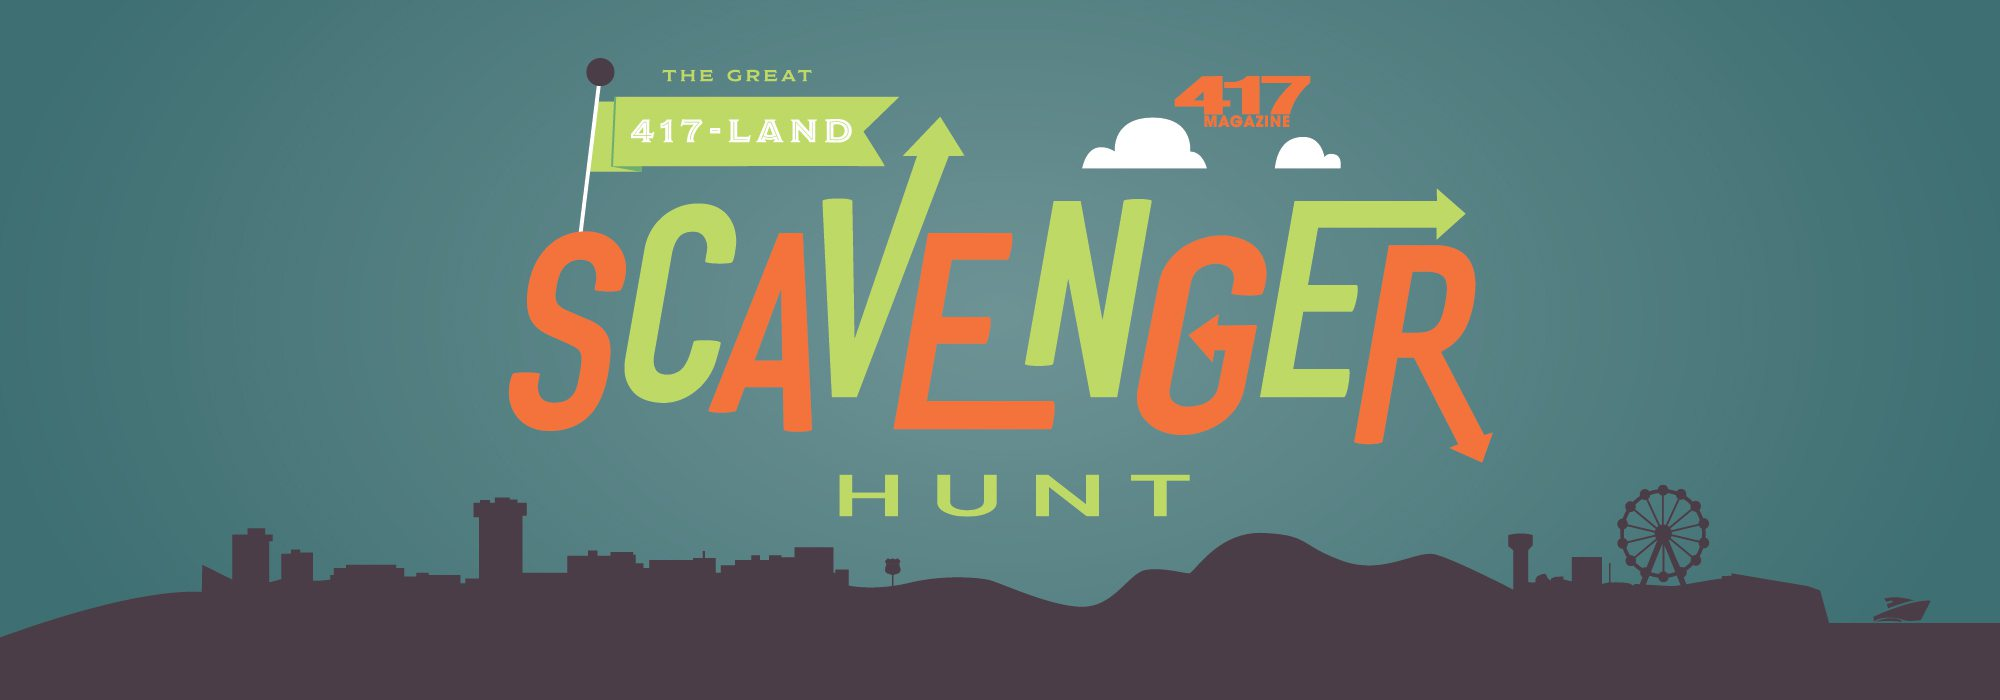 The Great 417-Land Scavenger Hunt